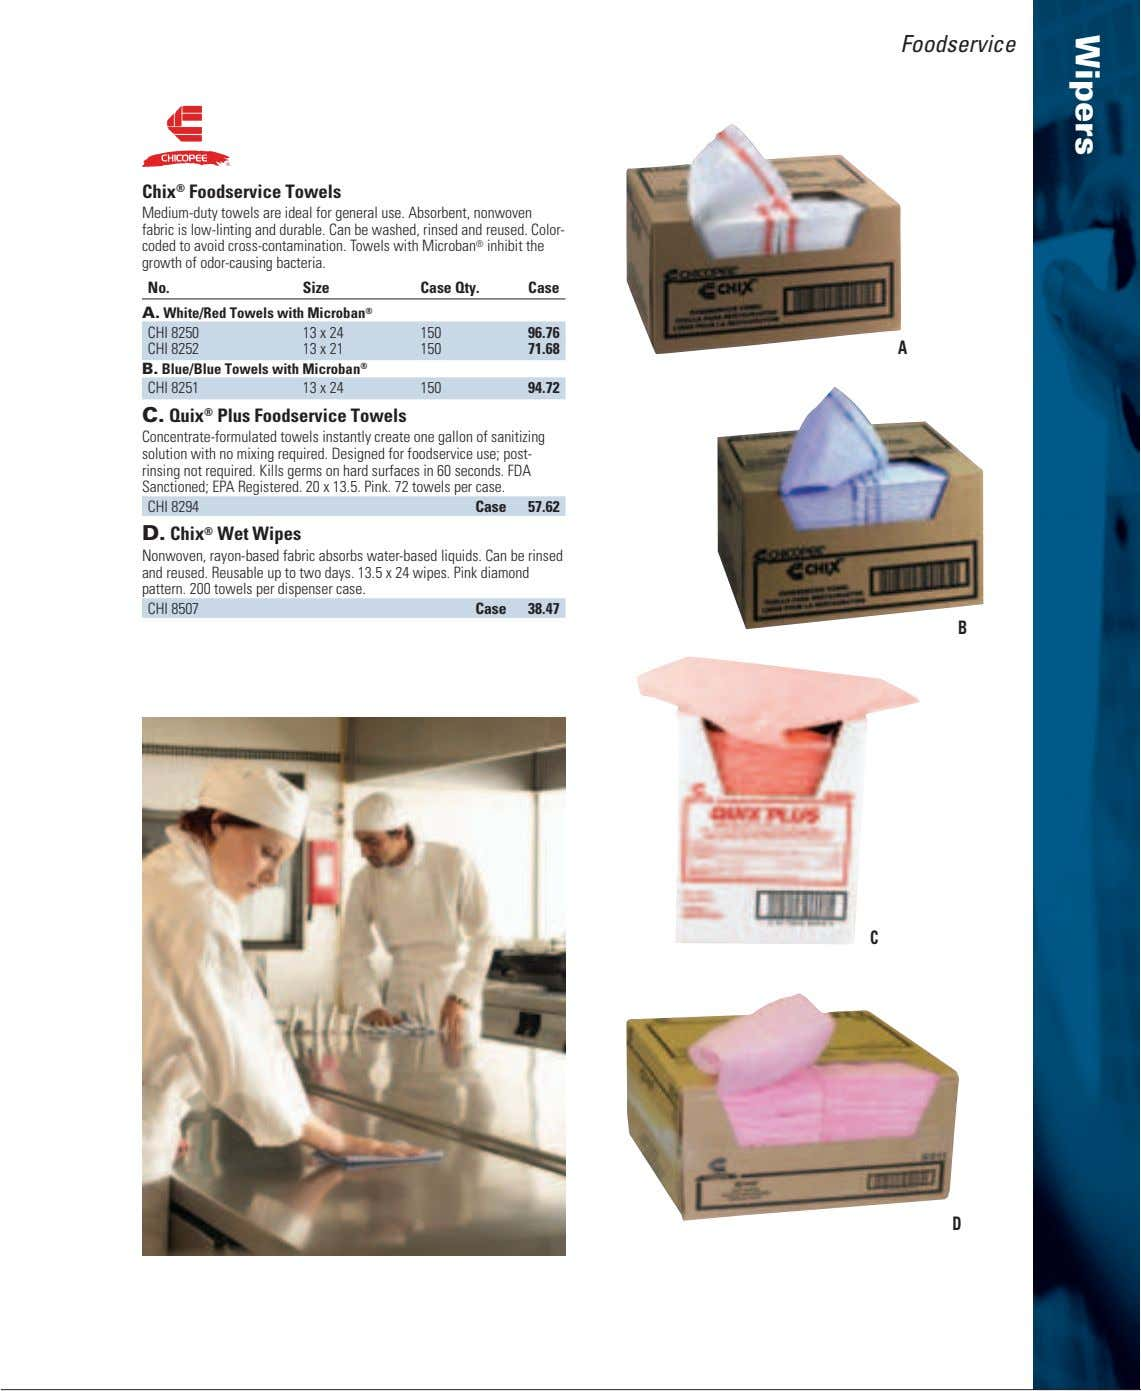 Foodservice Chix ® Foodservice Towels Medium-duty towels are ideal for general use. Absorbent, nonwoven fabric